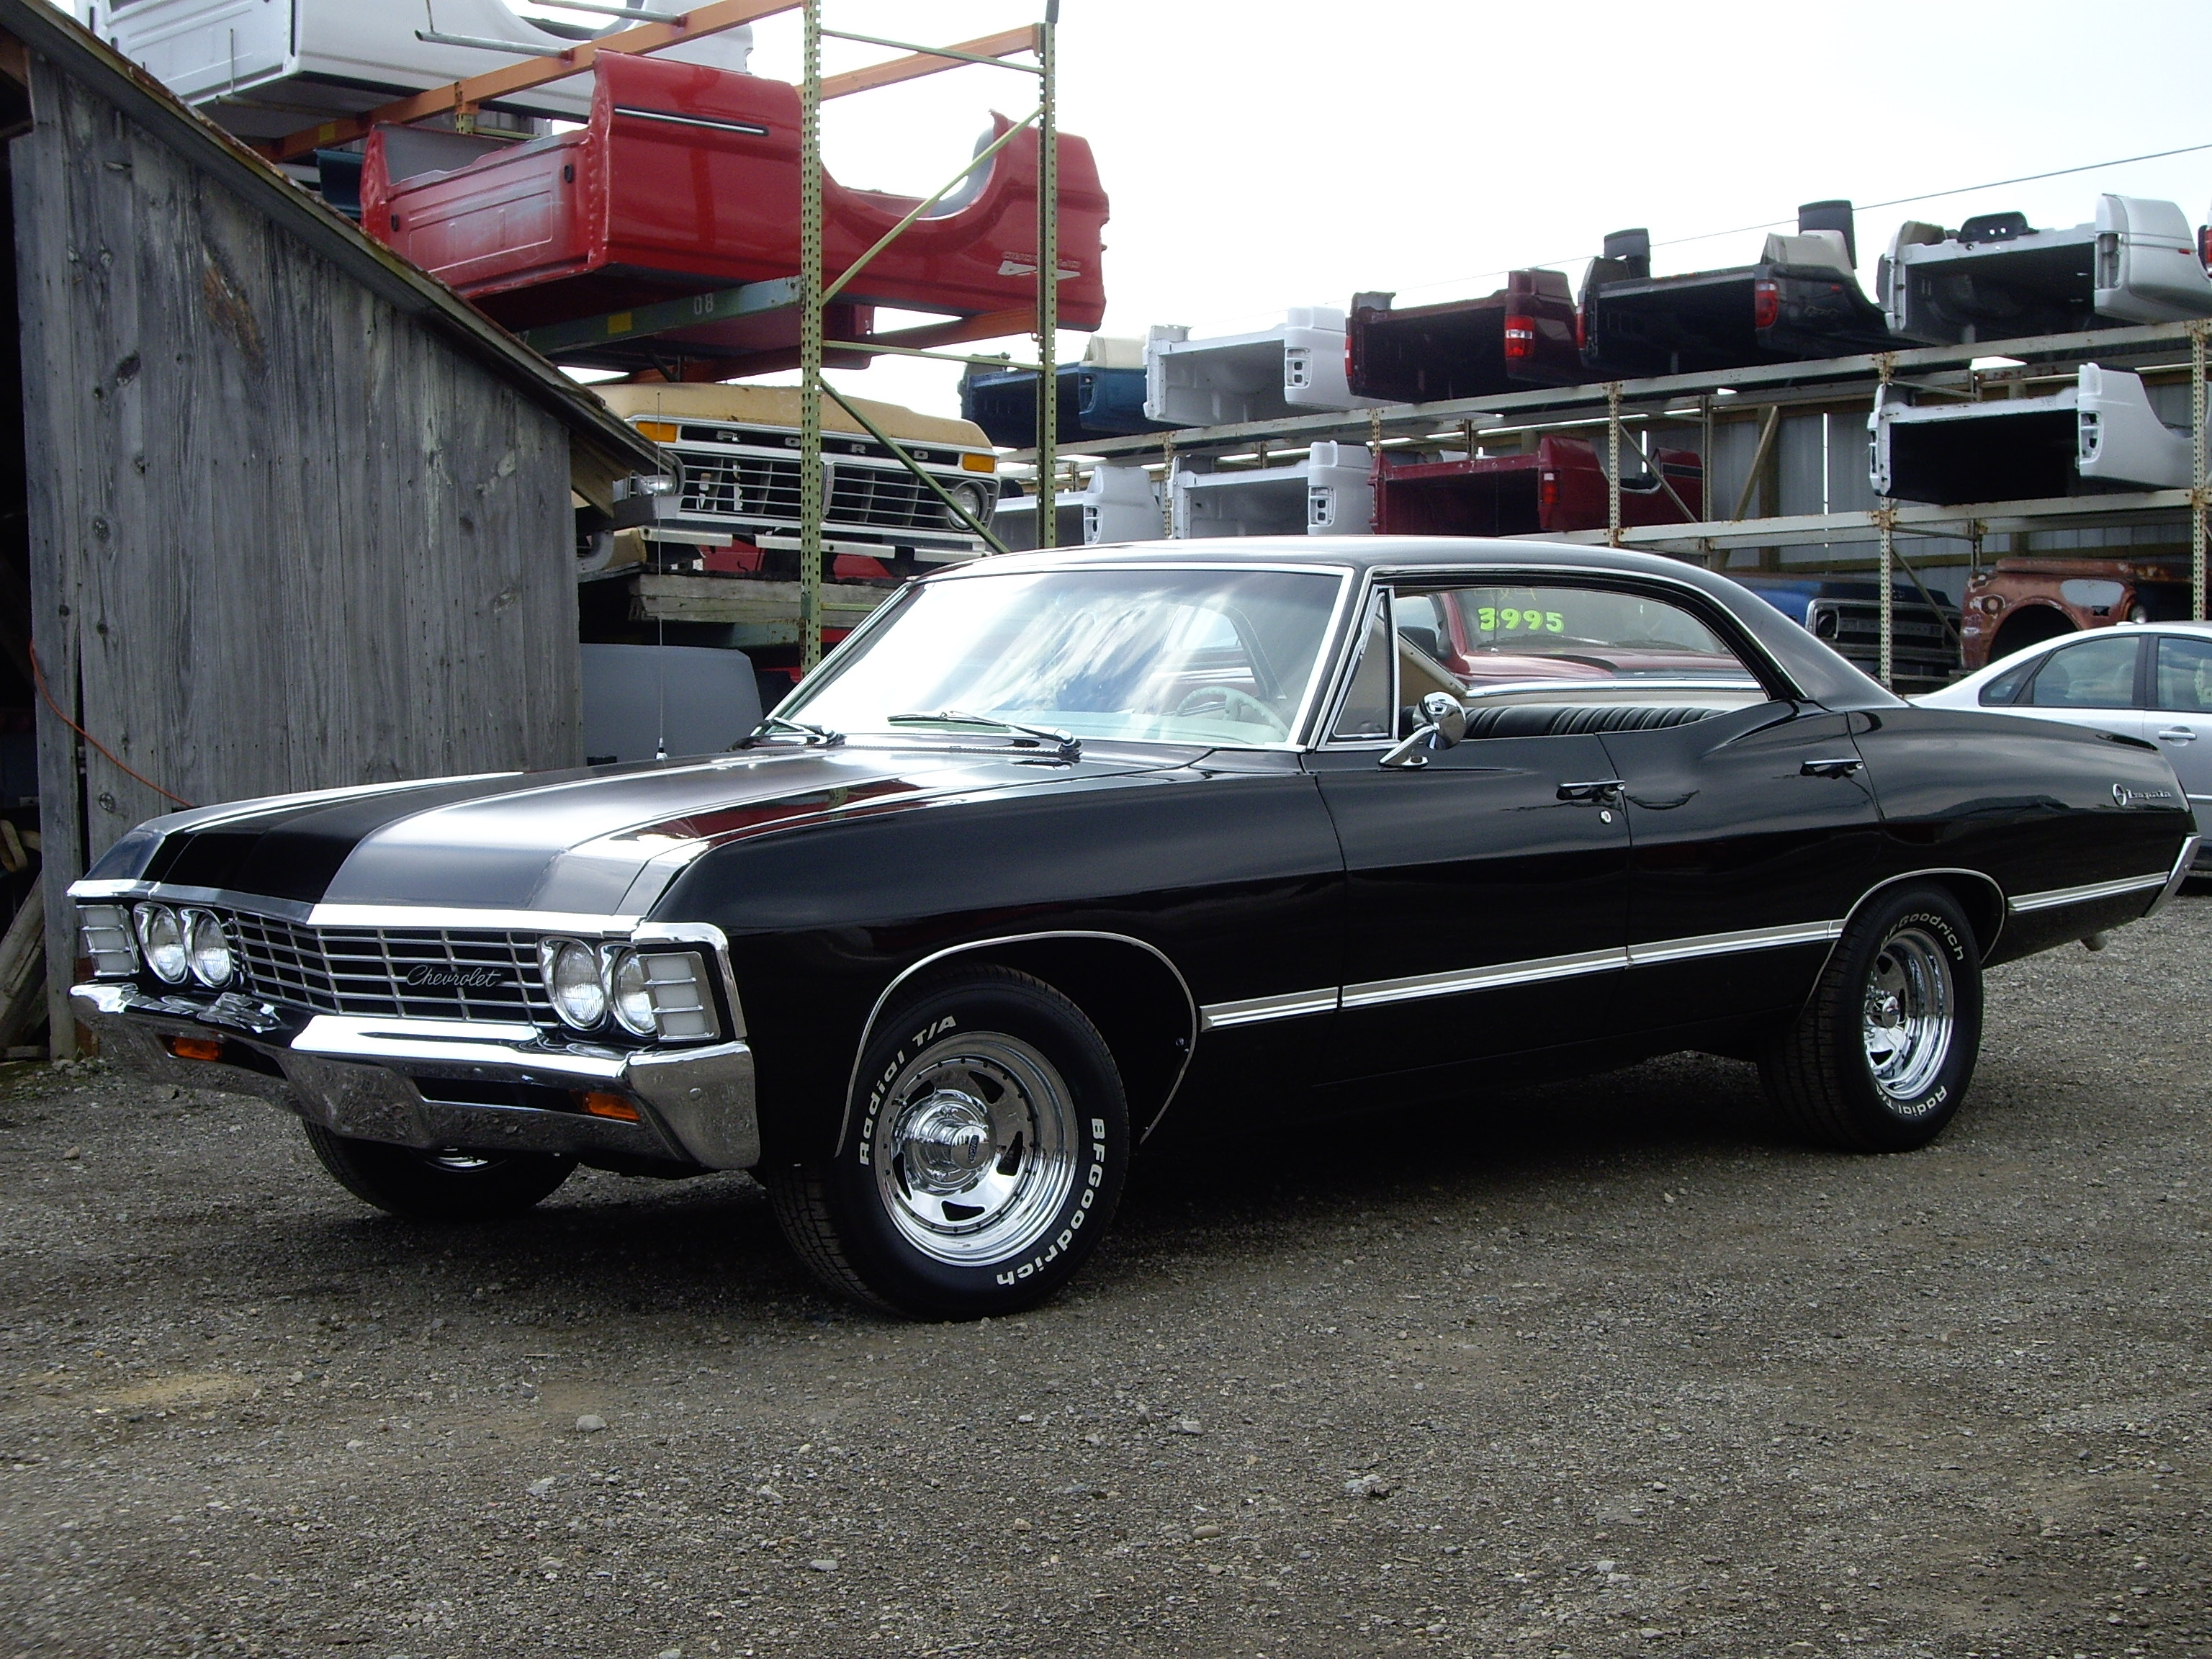 Outlaw 53 1967 Chevrolet Impala Specs Photos